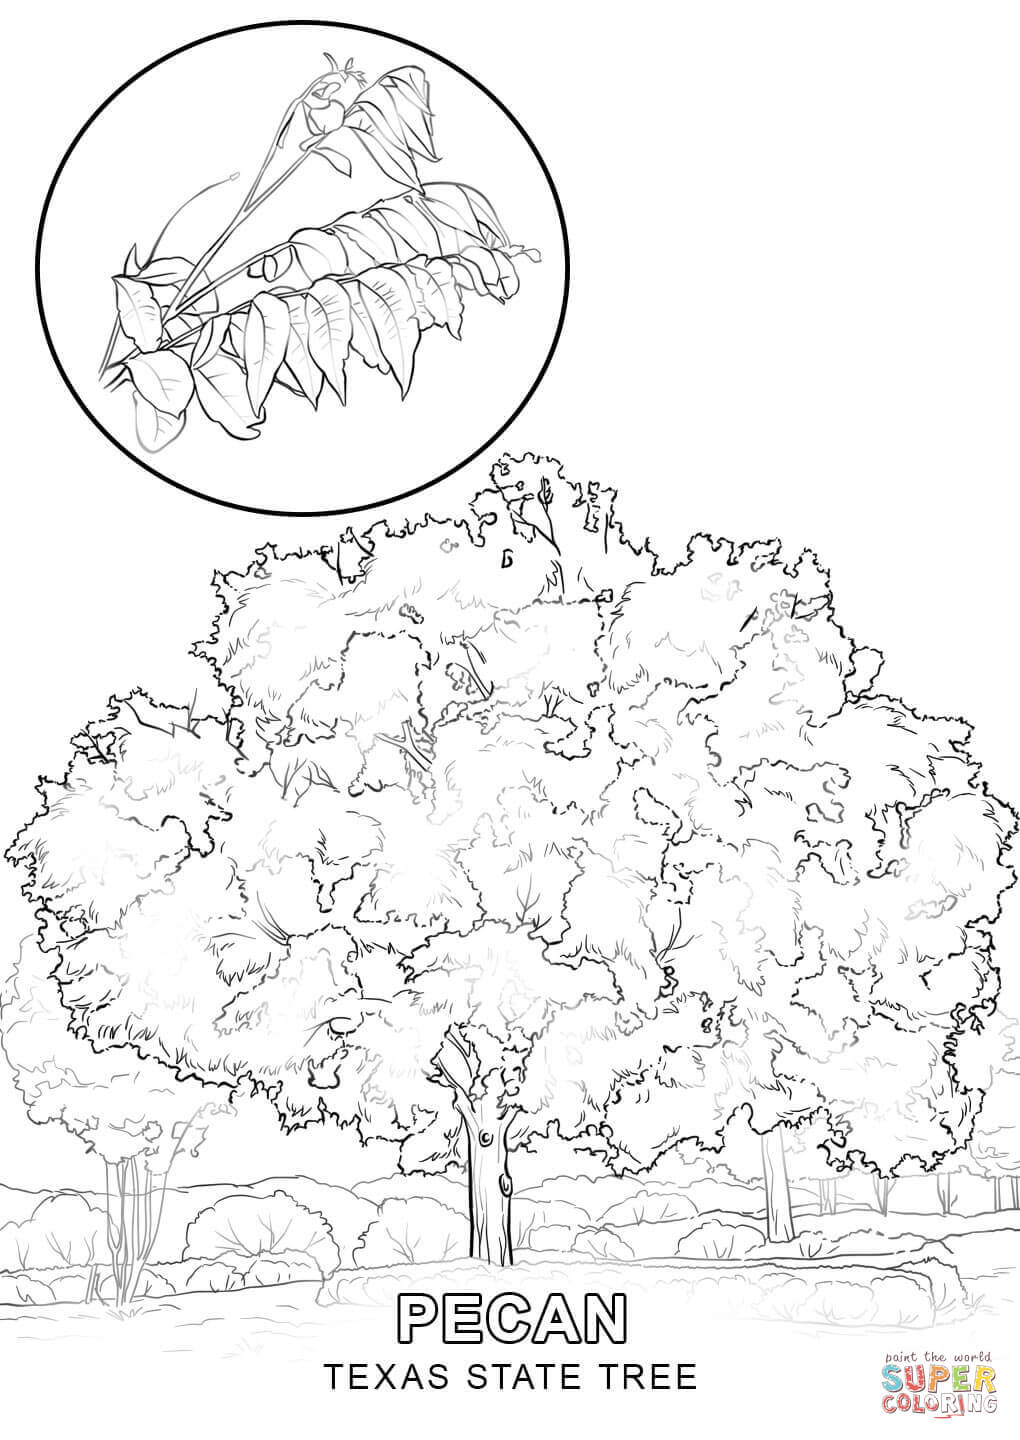 Texas State Tree Coloring Page Free Printable Coloring Pages